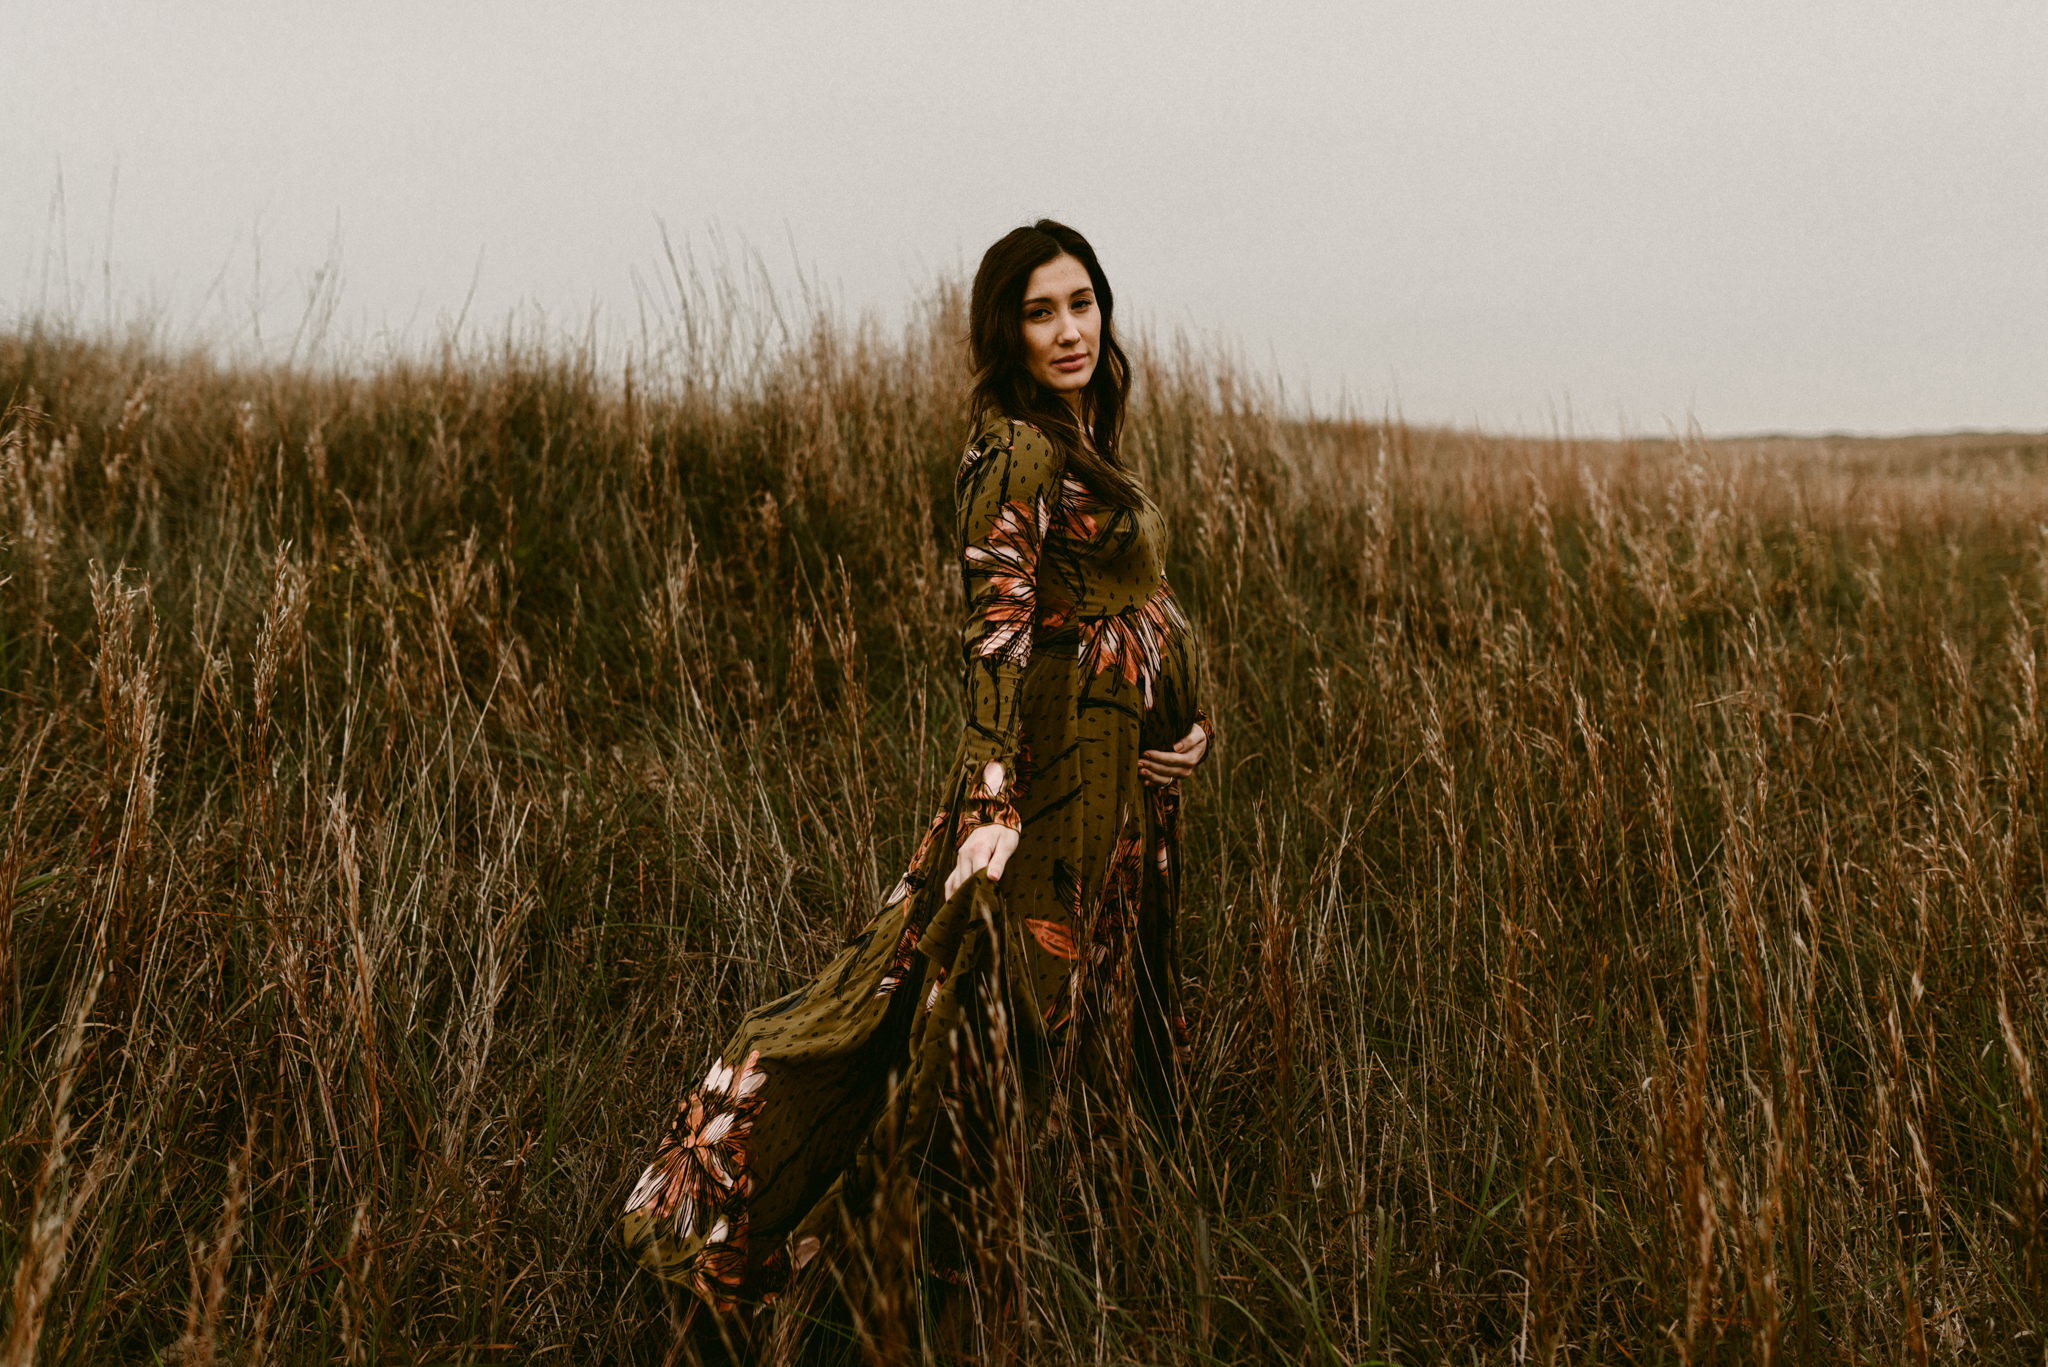 emotive-intimate-moody-maternity-session-on-padre-island-in-corpus-christi-flowing-dresses-loving-couple-grassy-fields-kerlyn-van-gelder-photography-corpus-christi-photographer